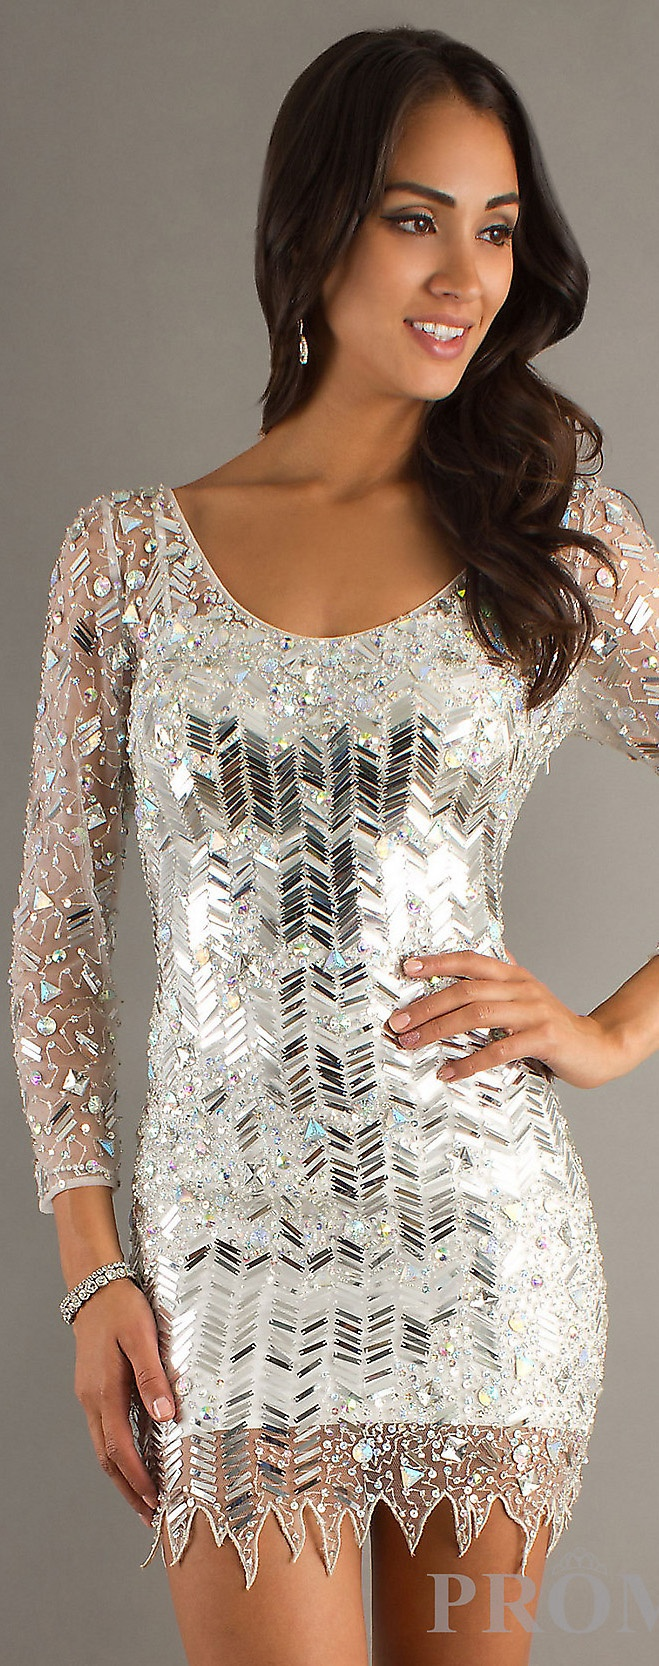 Sparkly silver dress long sleeve